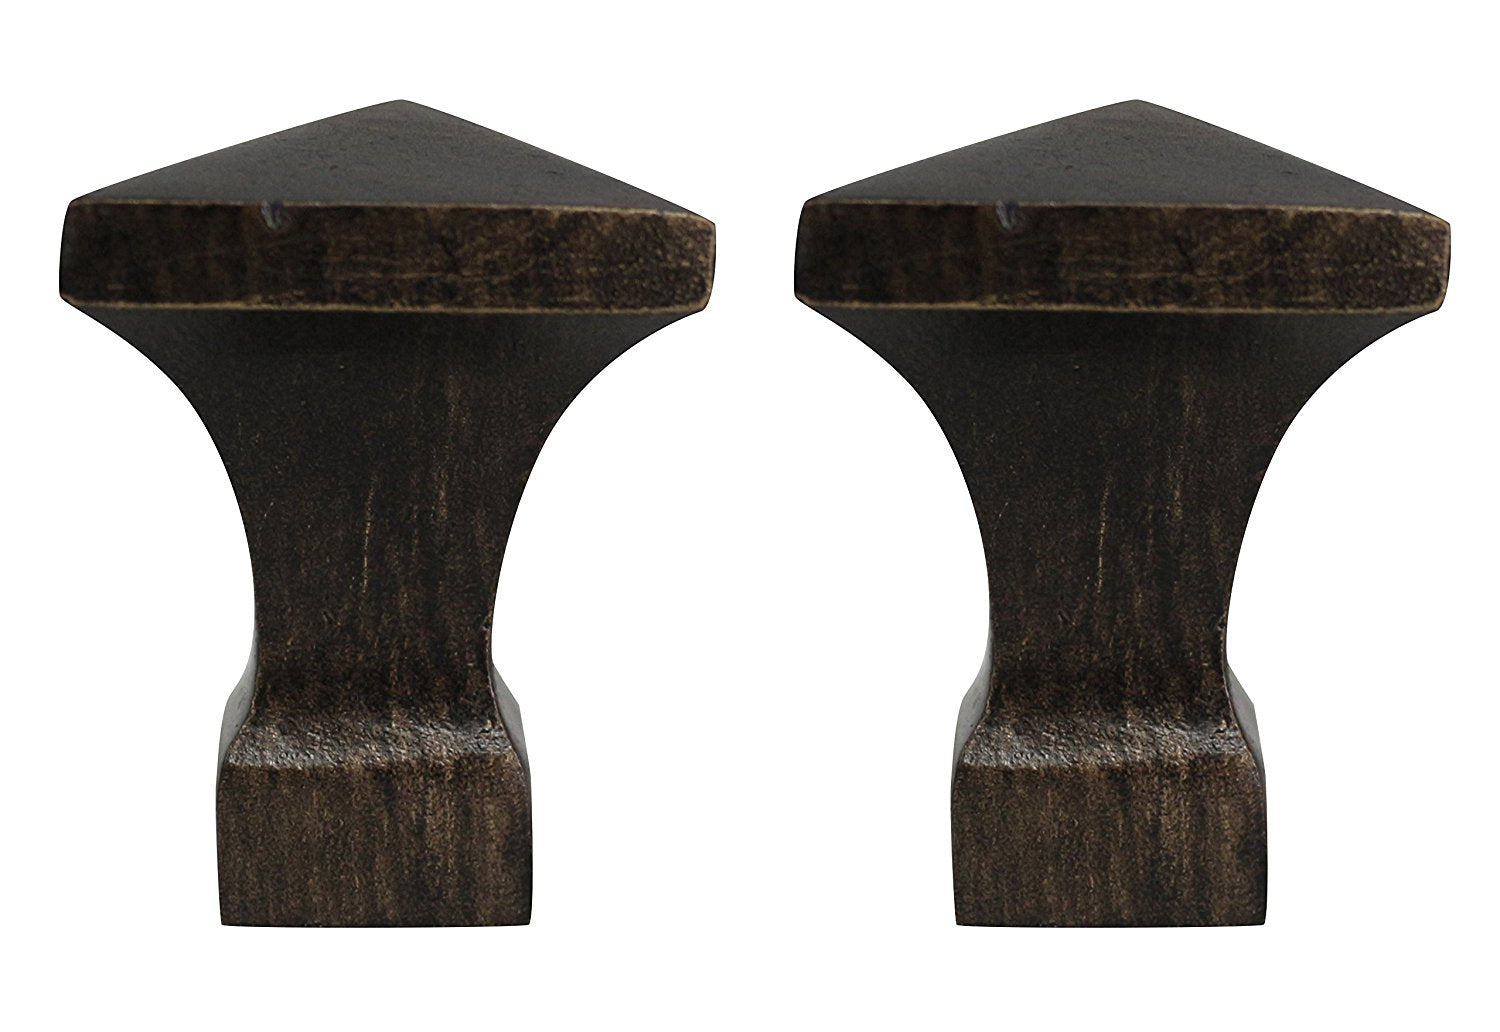 Semoy Lamp Finial - 4 Finishes